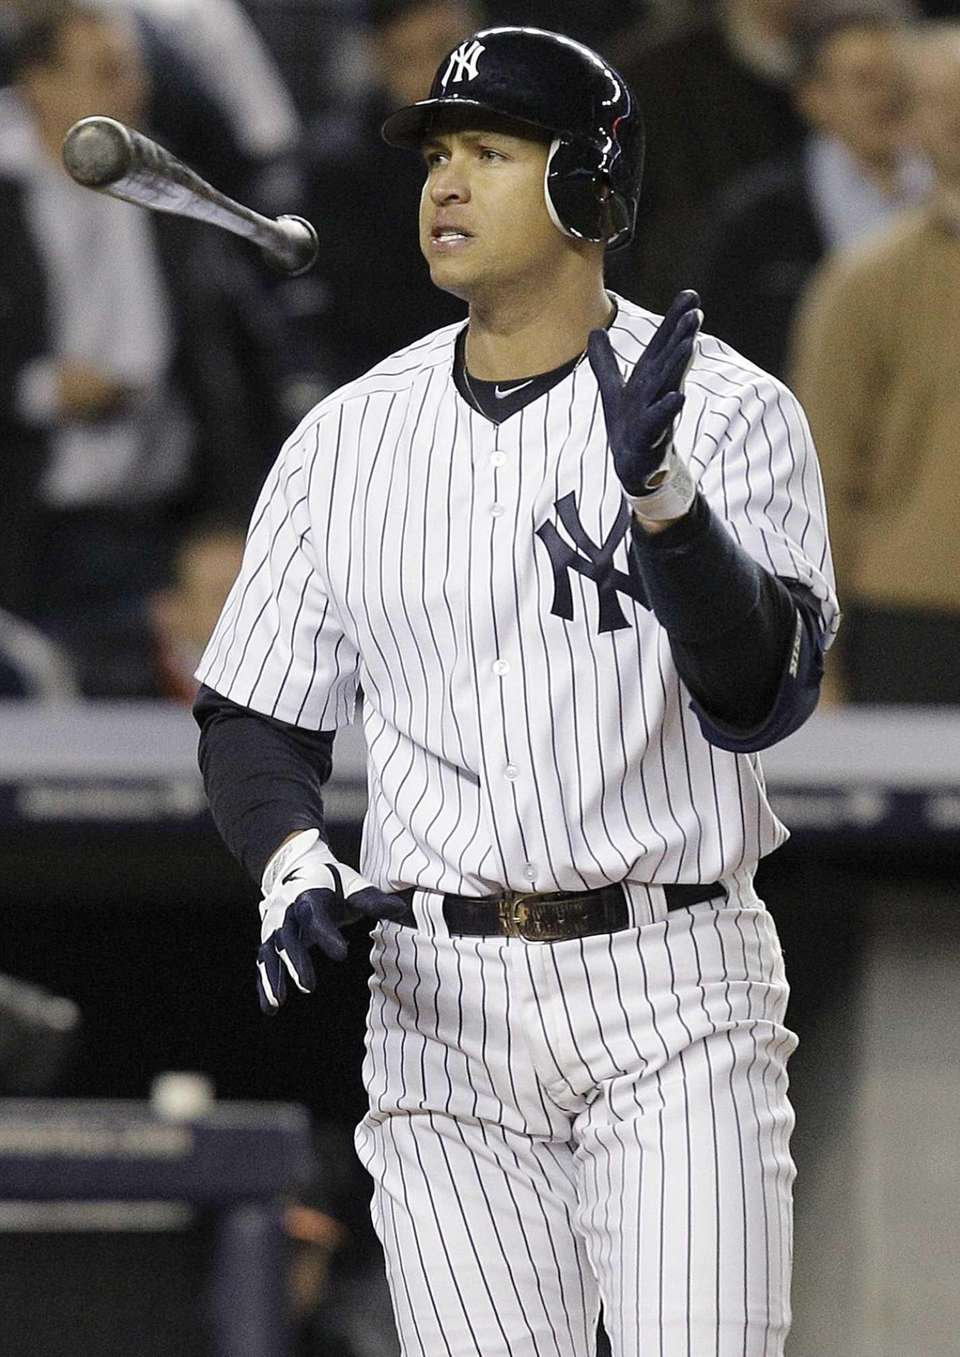 Alex Rodriguez tosses his bat after striking out